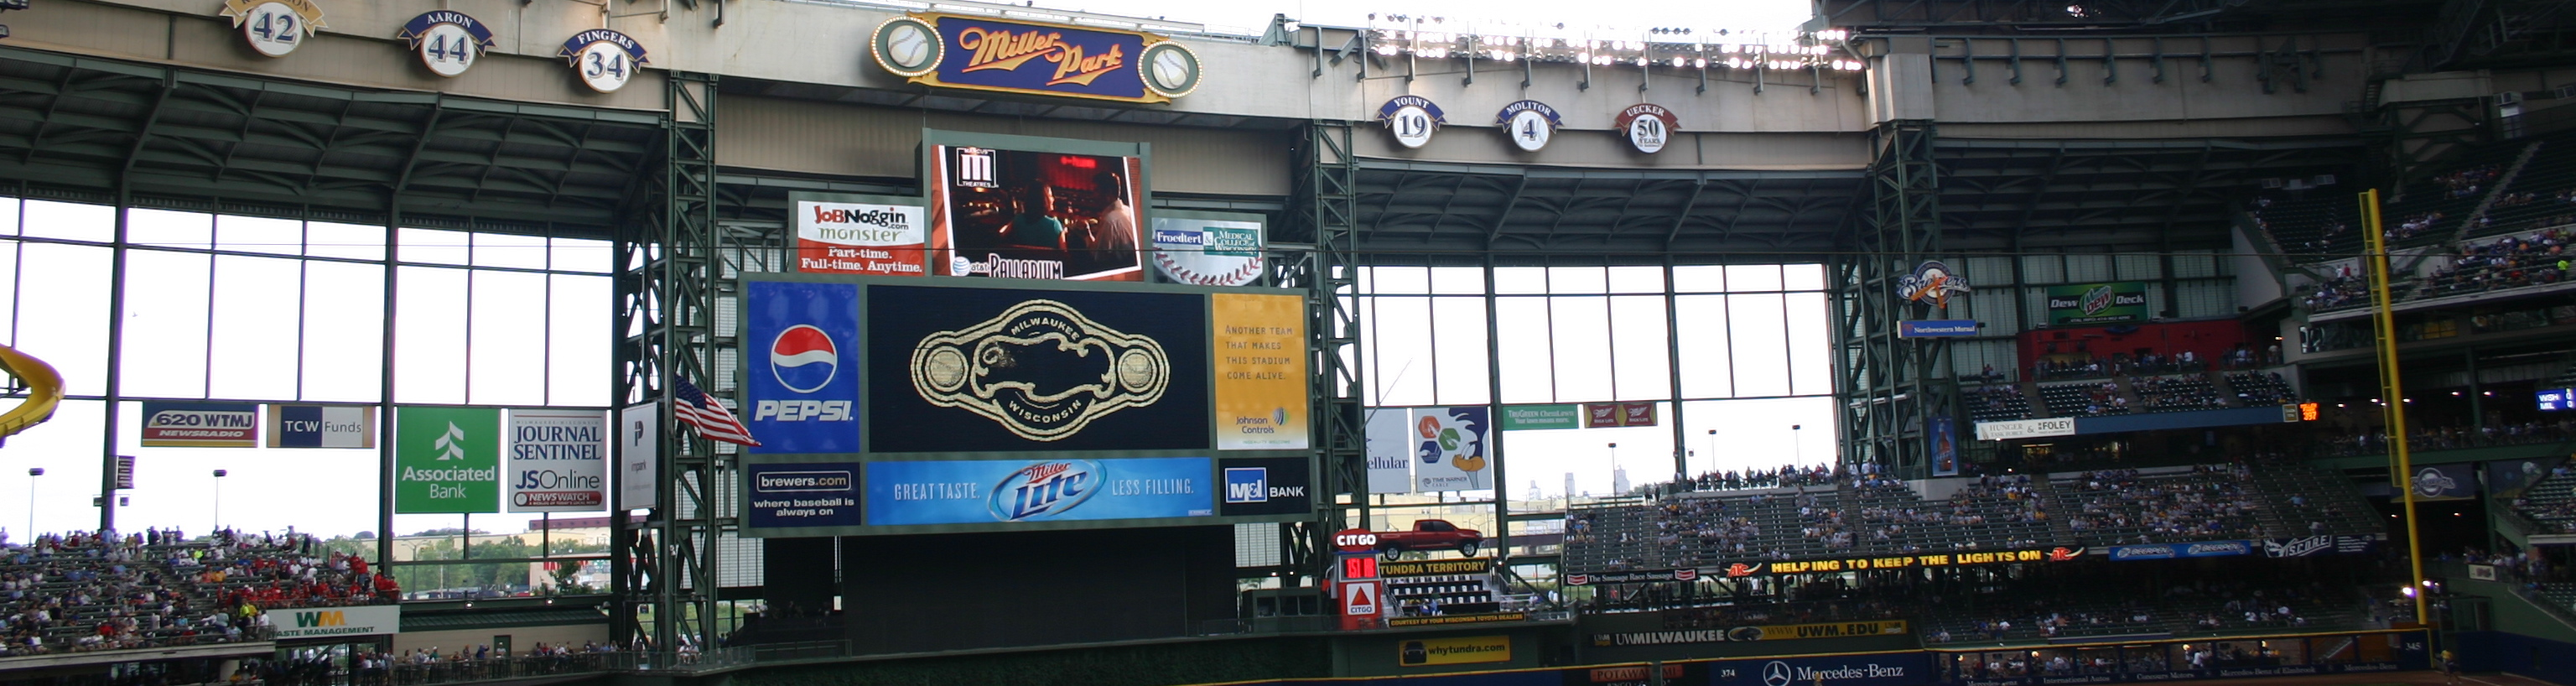 miller park,milwaukee travel,midwest tours,baseball trips